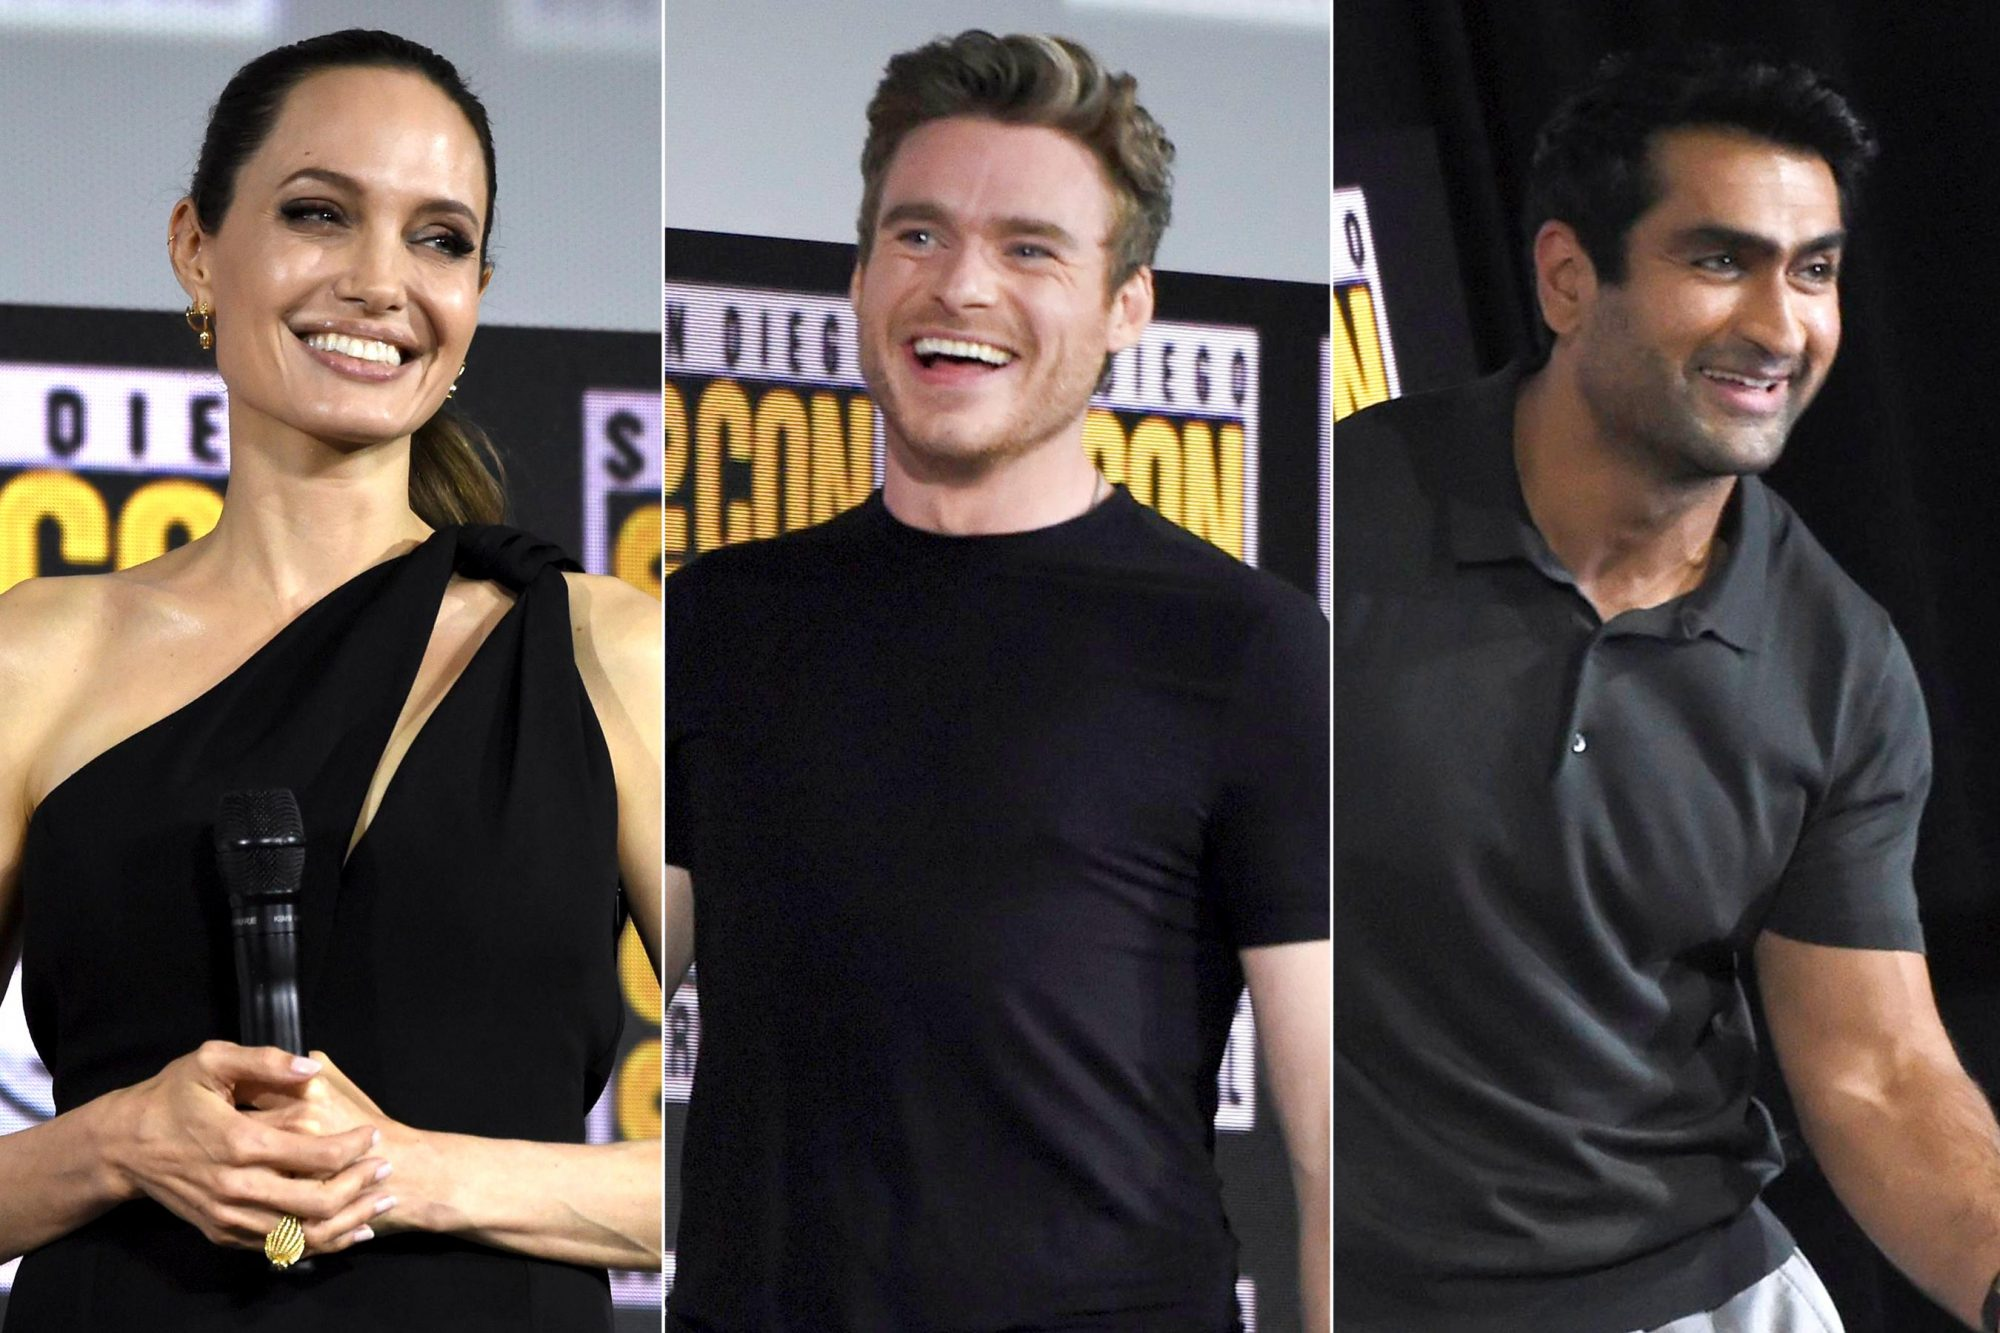 Mandatory Credit: Photo by Chris Pizzello/Invision/AP/Shutterstock (10342690d) Angelina Jolie attends the Marvel Studios panel on day three of Comic-Con International, in San Diego 2019 Comic-Con - Marvel Studios, San Diego, USA - 20 Jul 2019 Mandatory Credit: Photo by Chris Pizzello/Invision/AP/Shutterstock (10342690f) Richard Madden walks on stage at the Marvel Studios panel on day three of Comic-Con International, in San Diego 2019 Comic-Con - Marvel Studios, San Diego, USA - 20 Jul 2019 Mandatory Credit: Photo by Chris Pizzello/Invision/AP/Shutterstock (10342690e) Kumail Nanjiani greets fans at the Marvel Studios panel on day three of Comic-Con International, in San Diego 2019 Comic-Con - Marvel Studios, San Diego, USA - 20 Jul 2019